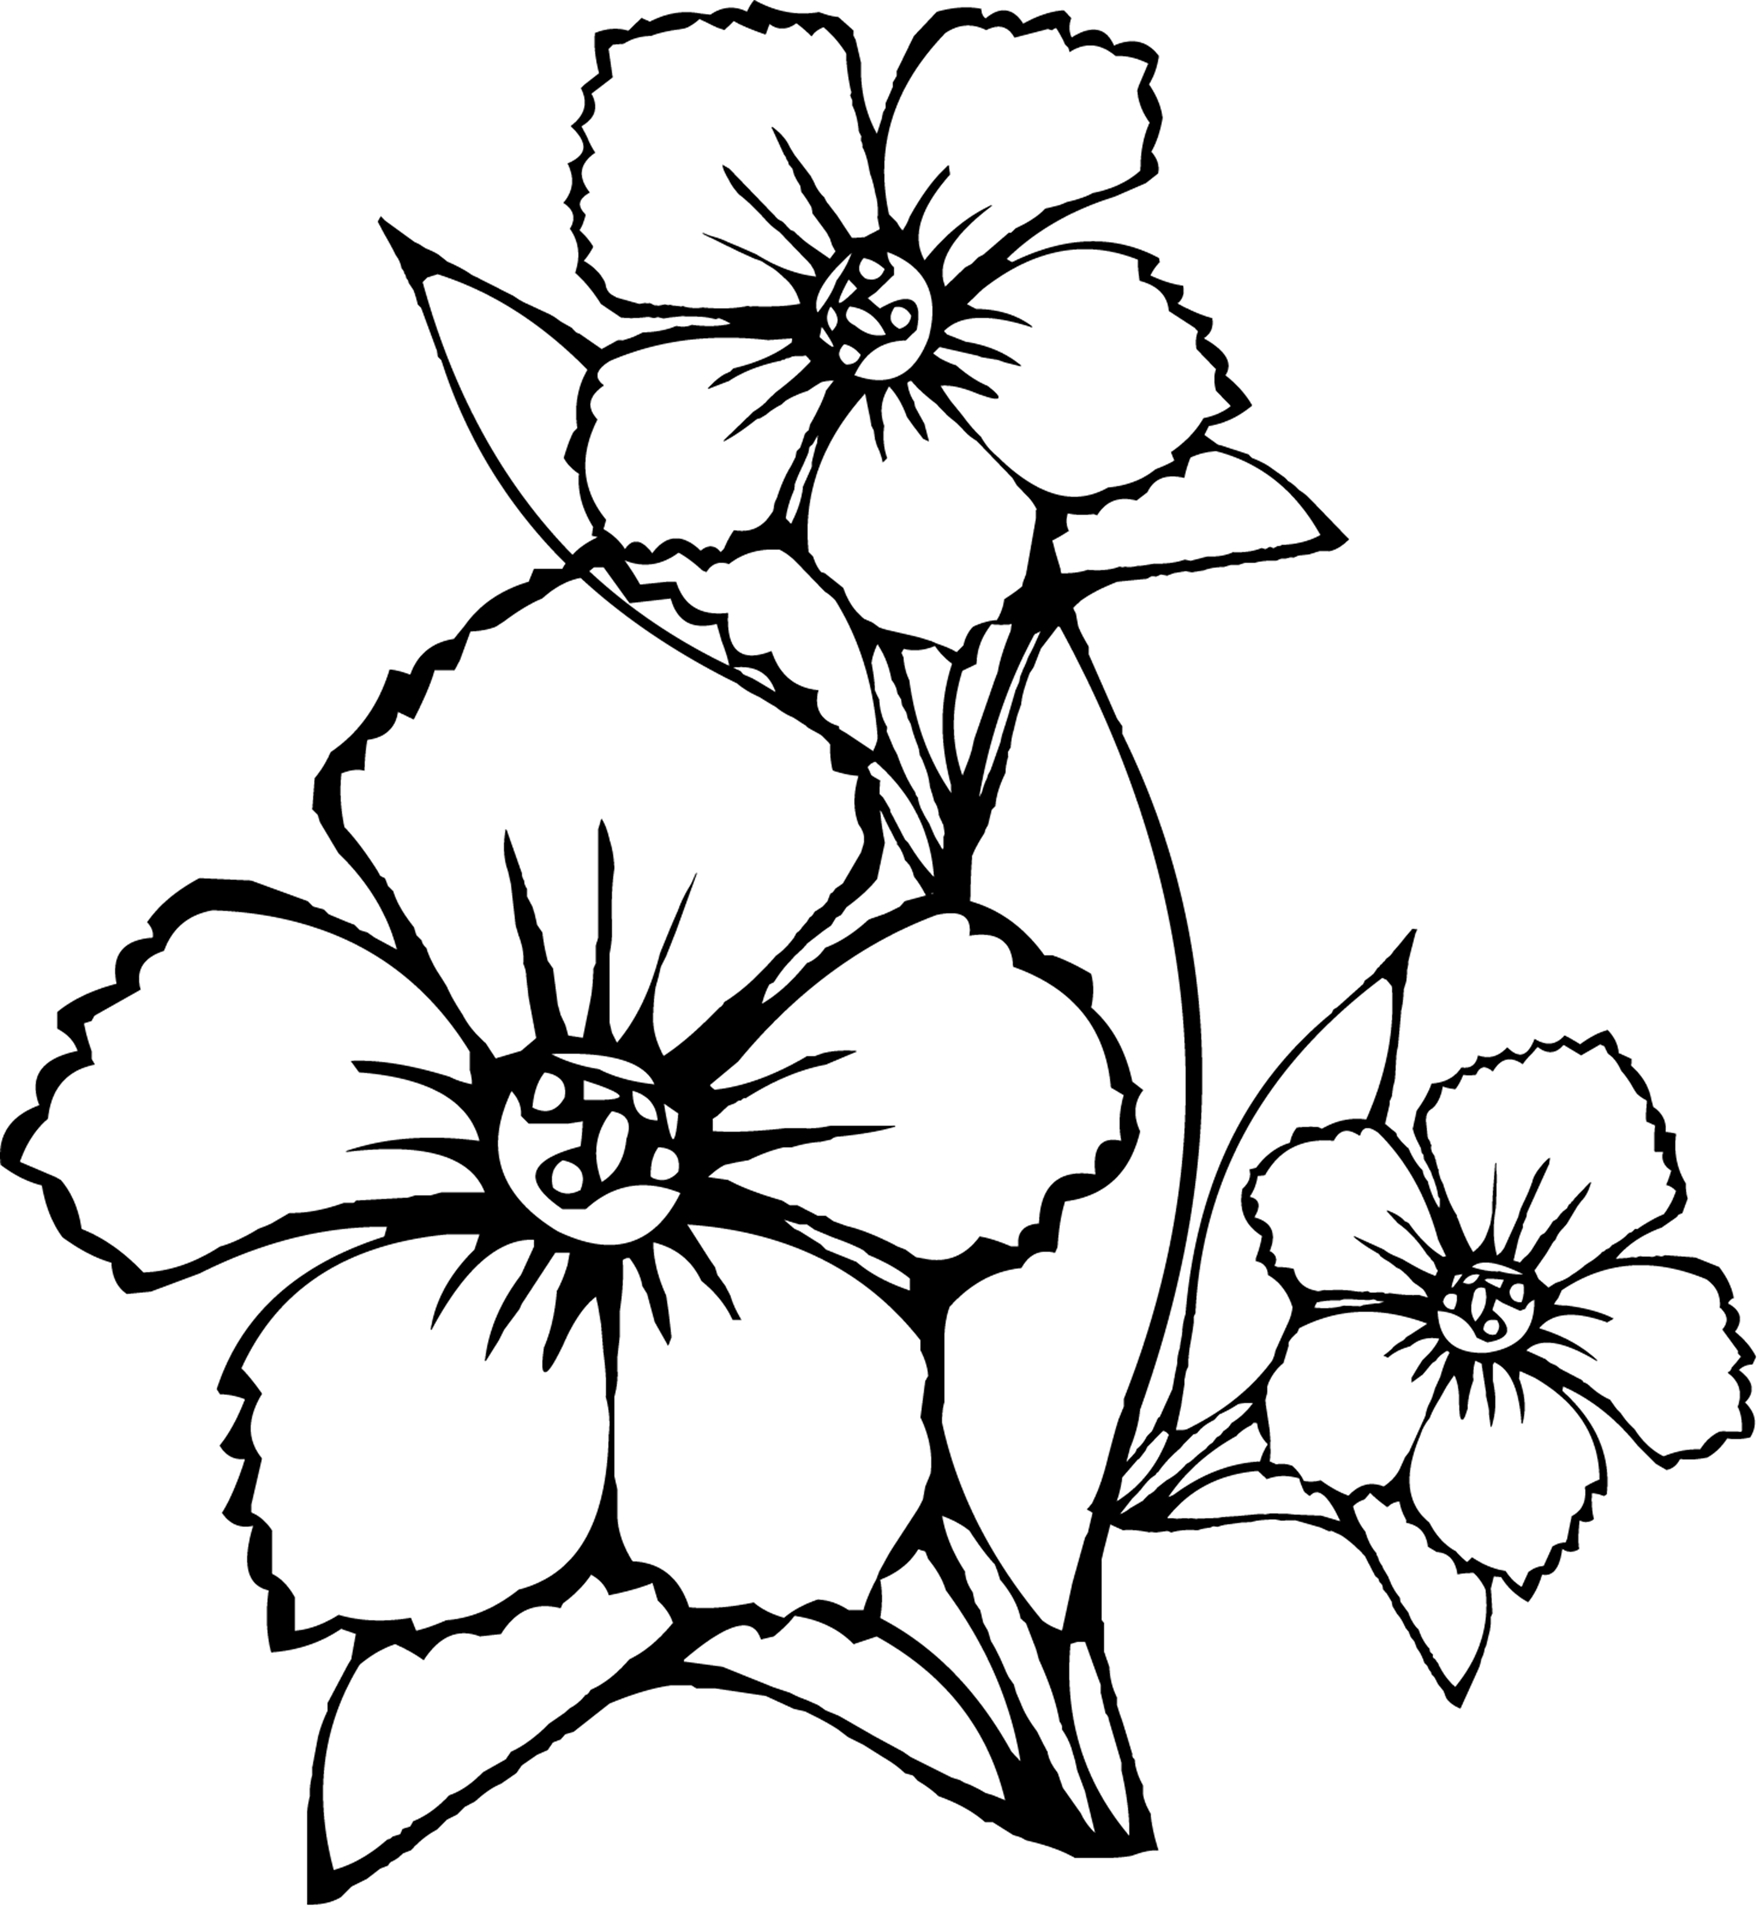 coloring images flowers free printable flower coloring pages for kids best flowers coloring images